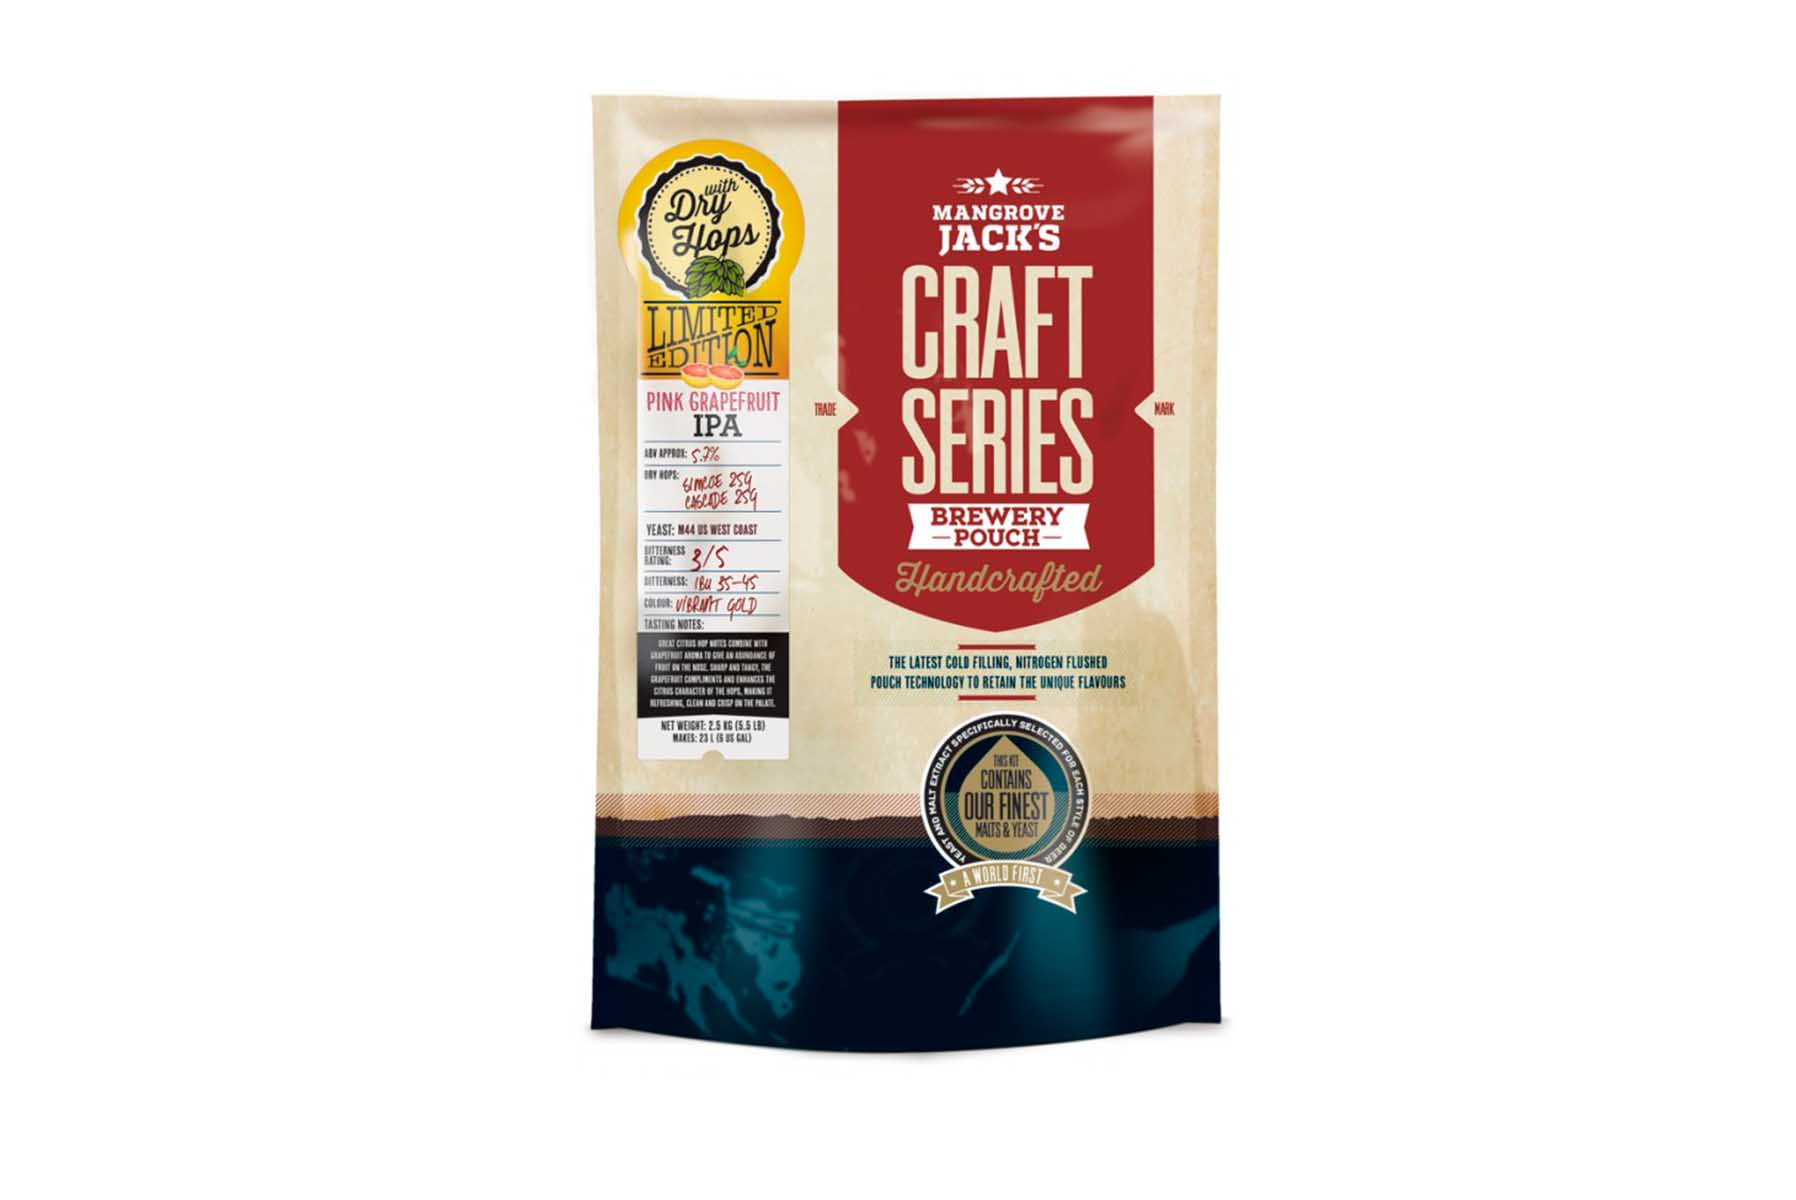 Купить Mangrove Jack's Craft Series Pink Grapefruit IPA 2,5 кг в Воронеже